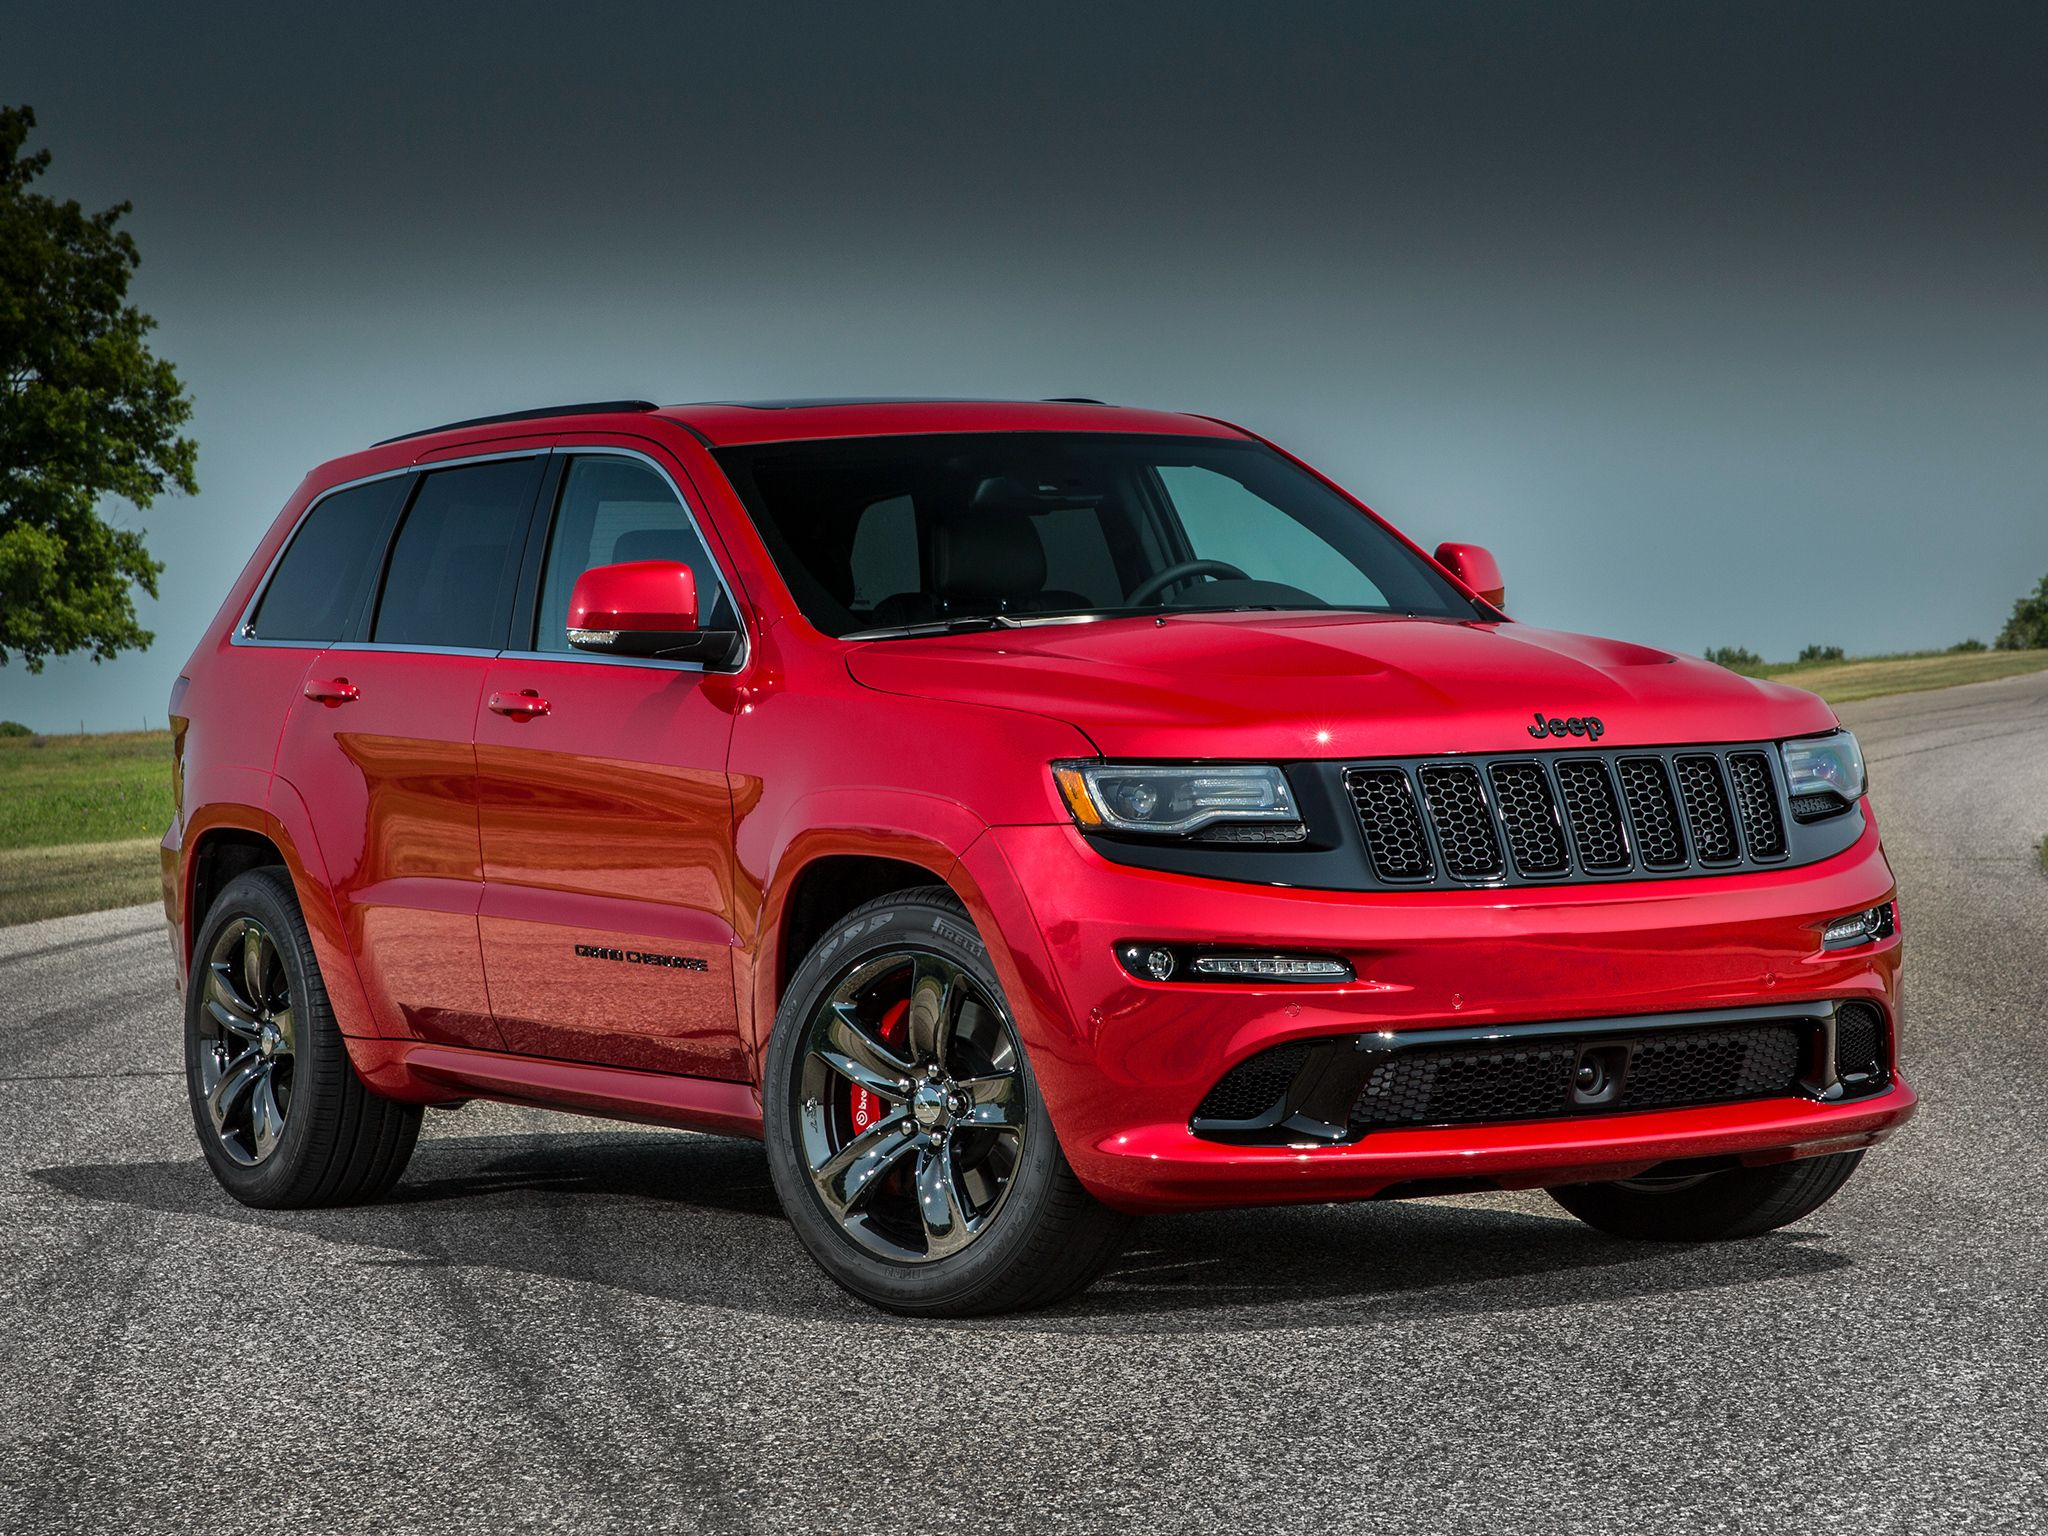 2015 Jeep Grand Cherokee Srt Gets More Power New Appearance Package Jeep Grand Cherokee Srt Jeep Grand Cherokee Jeep Grand